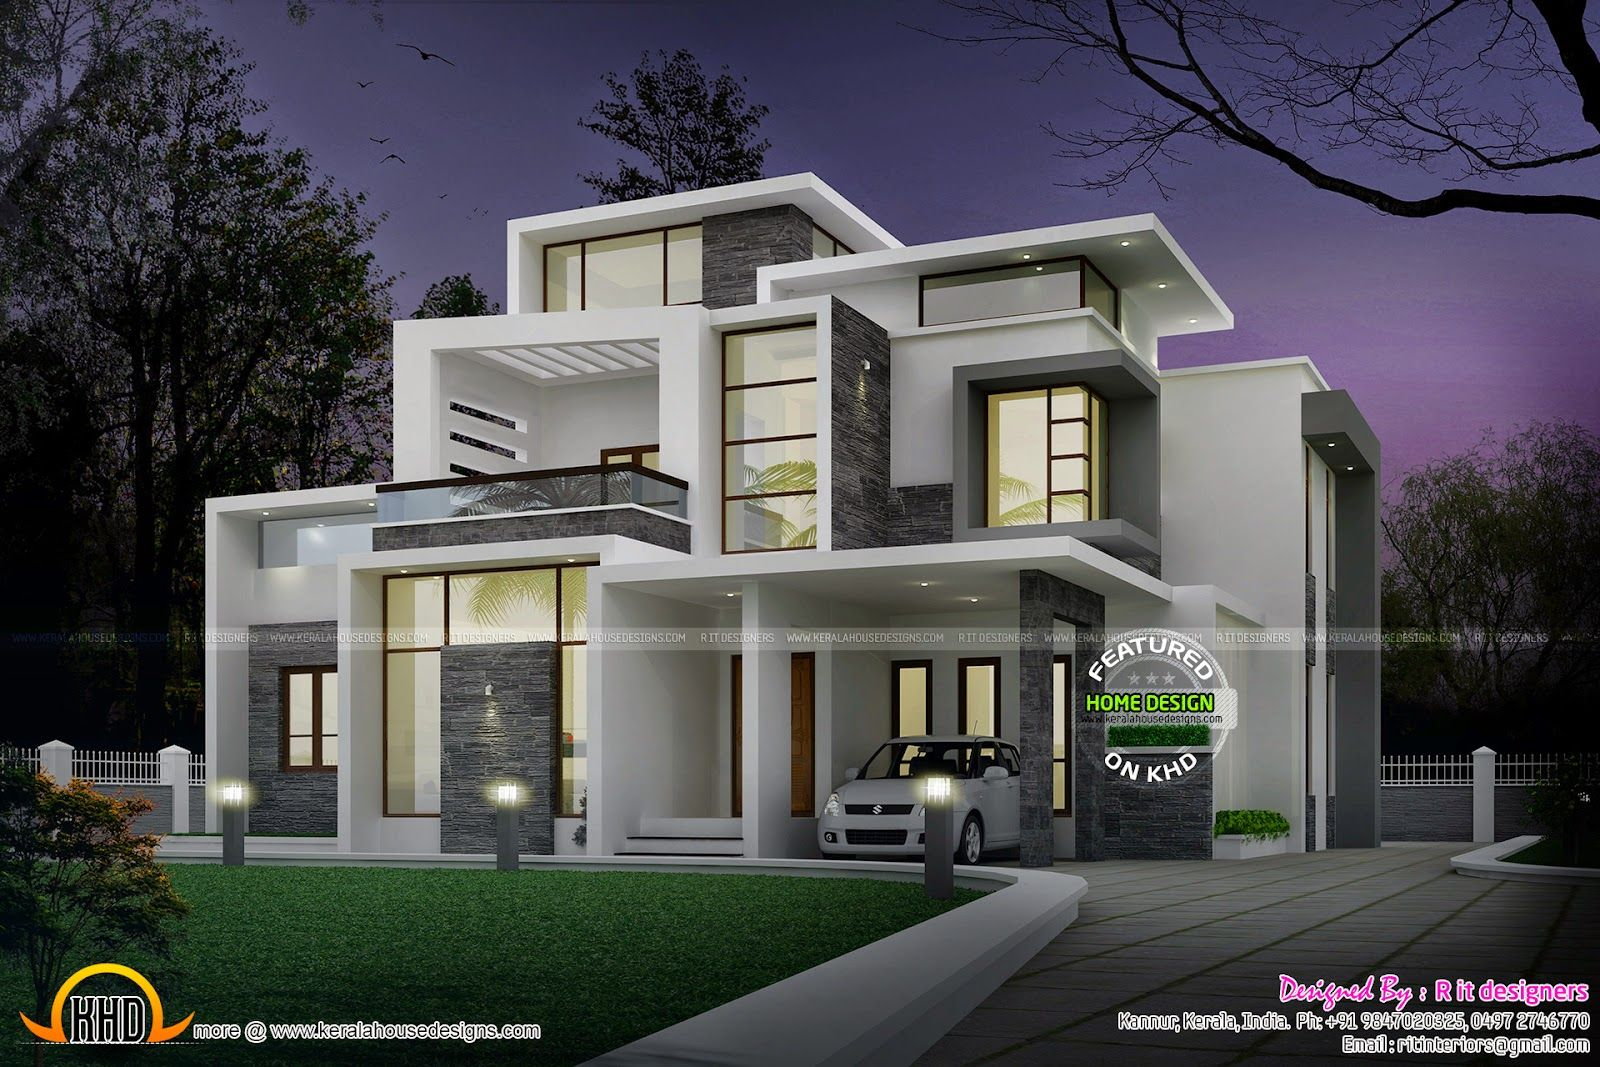 Grand contemporary home design kerala home design and for Contemporary cottage plans